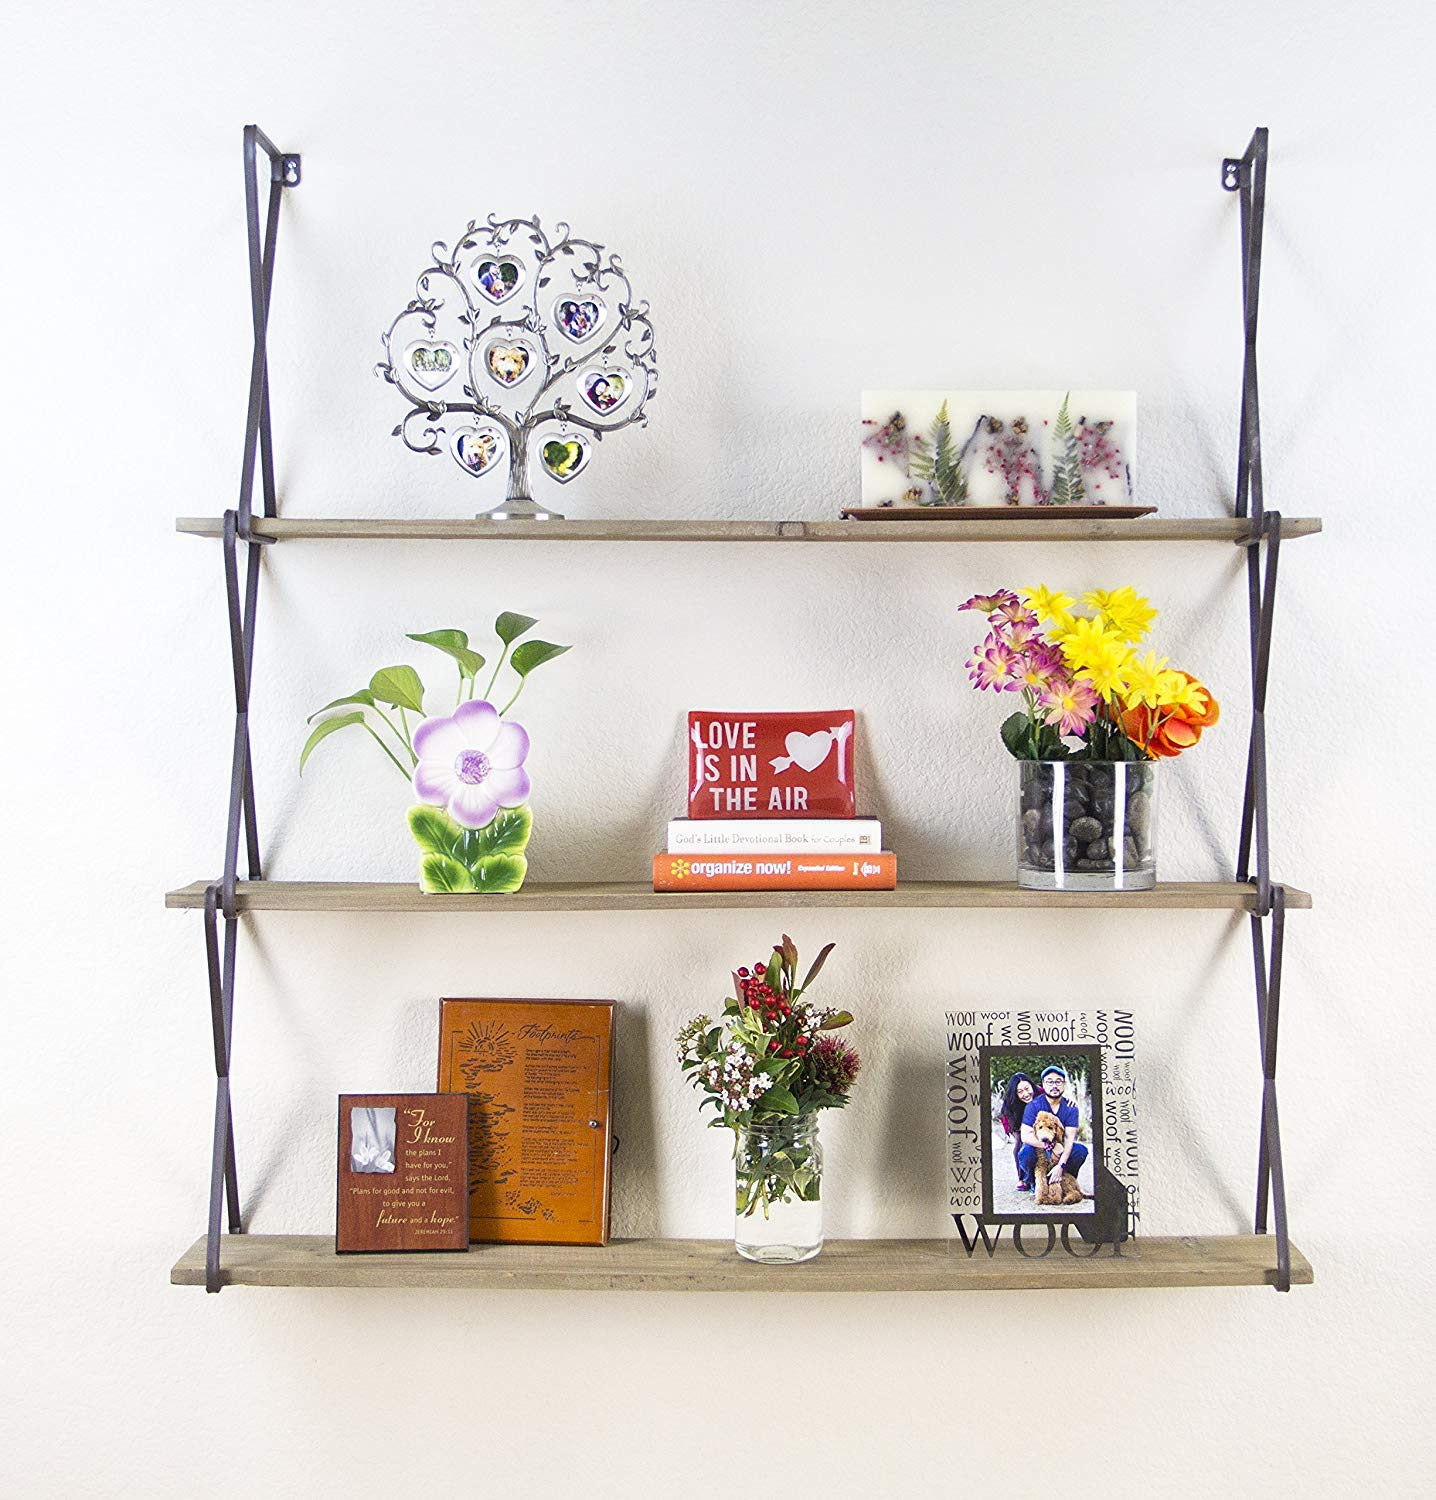 Indian Decor 28977 Rustic Floating Wood Shelves 3-tier Wall Mount